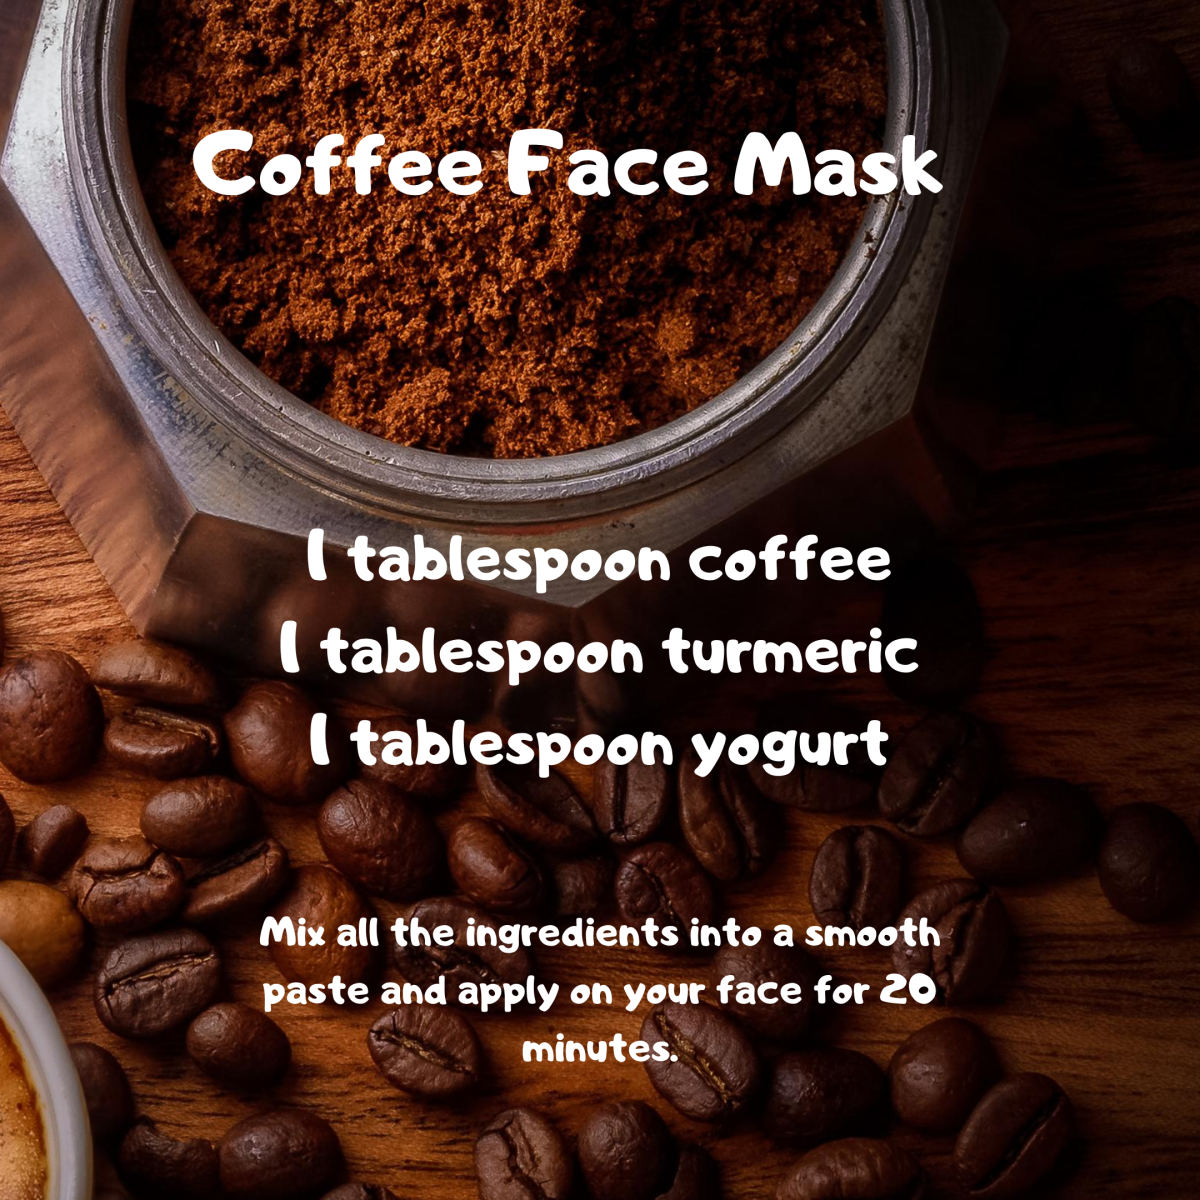 Coffee face mask makes skin smooth and brighter looking.